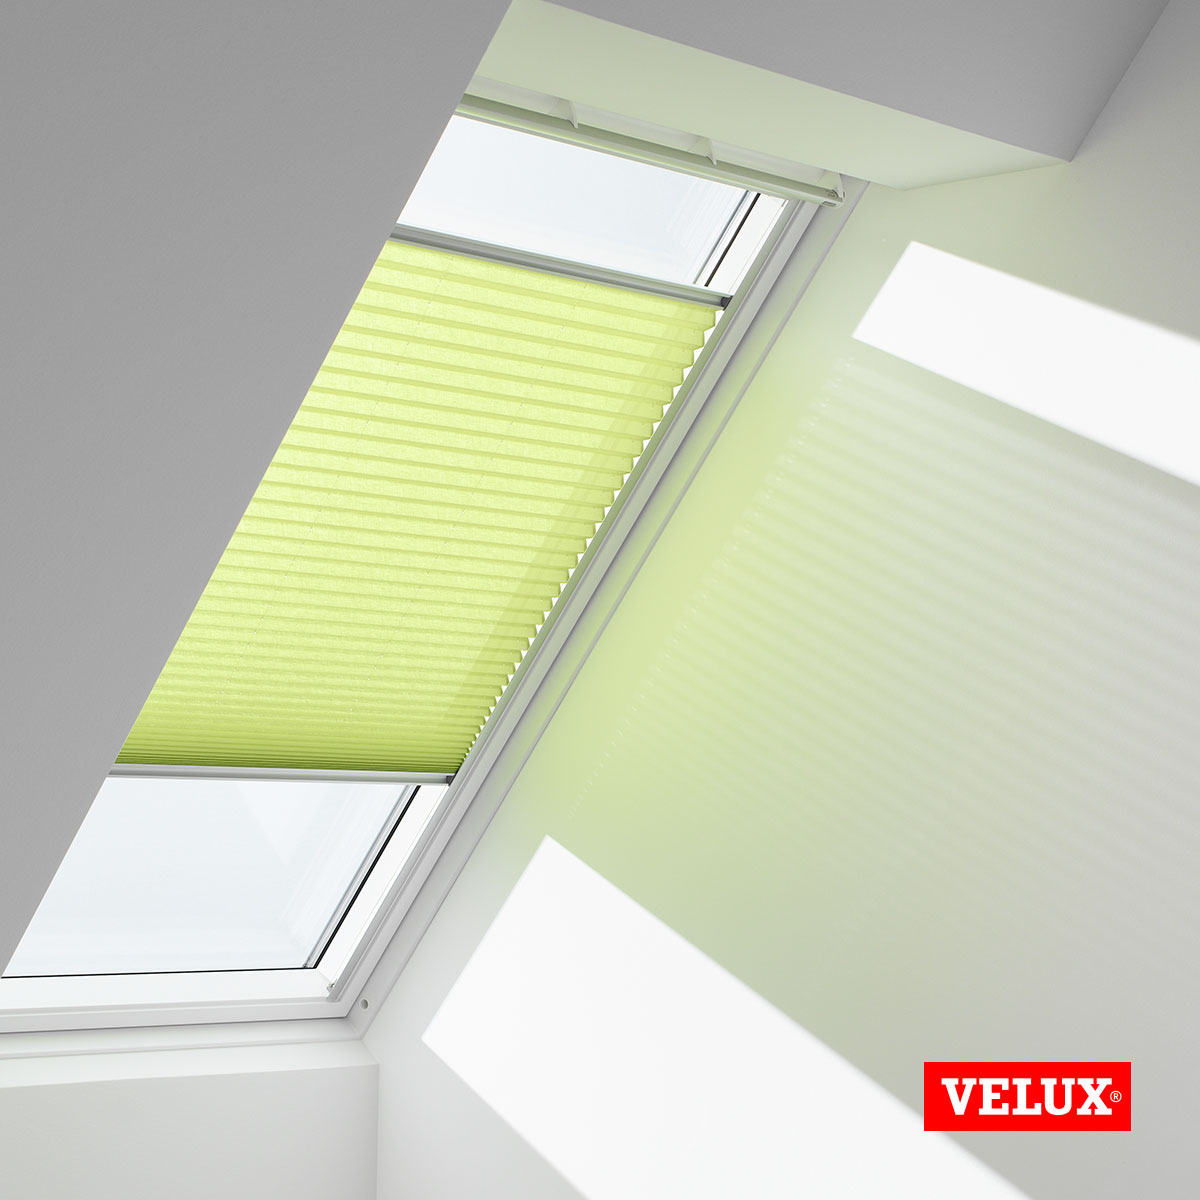 Genuine Velux Pleated Blinds For Skylight Roof Window In